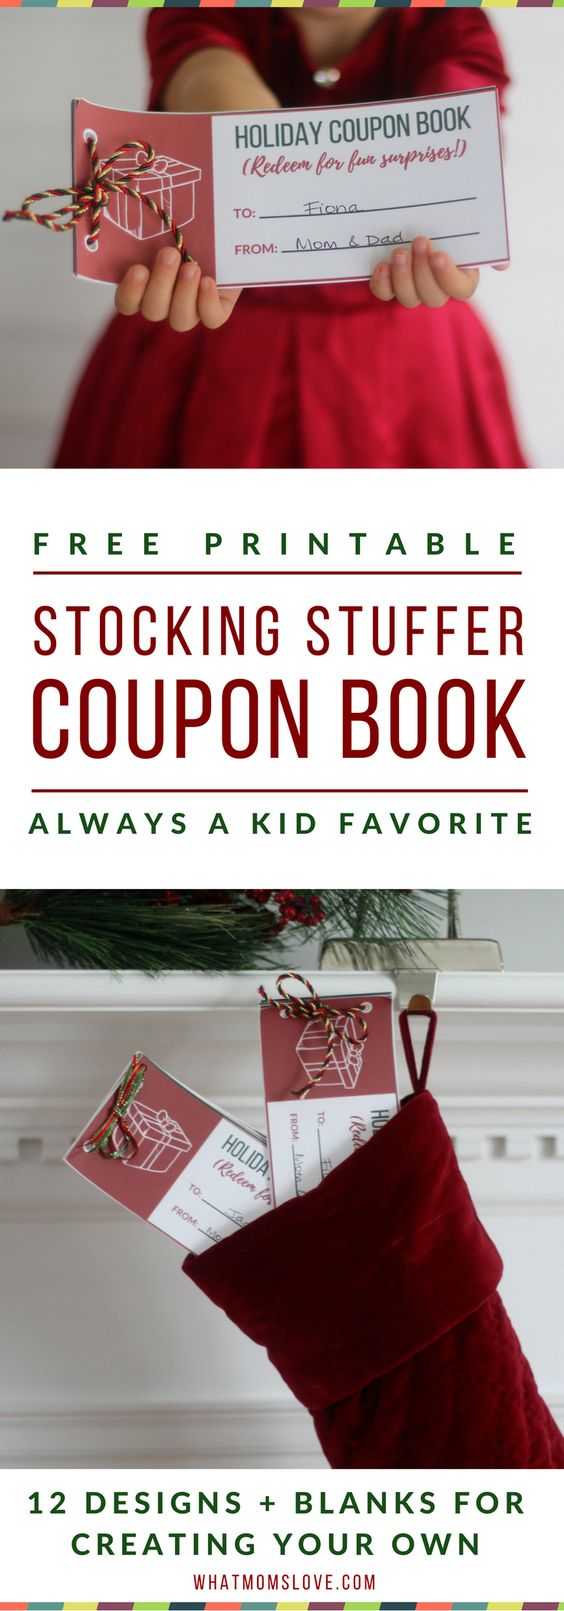 printable coupon book for christmas hanukkah birthdays printable coupon book for christmas hanukkah birthdays the perfect stocking stuffer your kids will adore